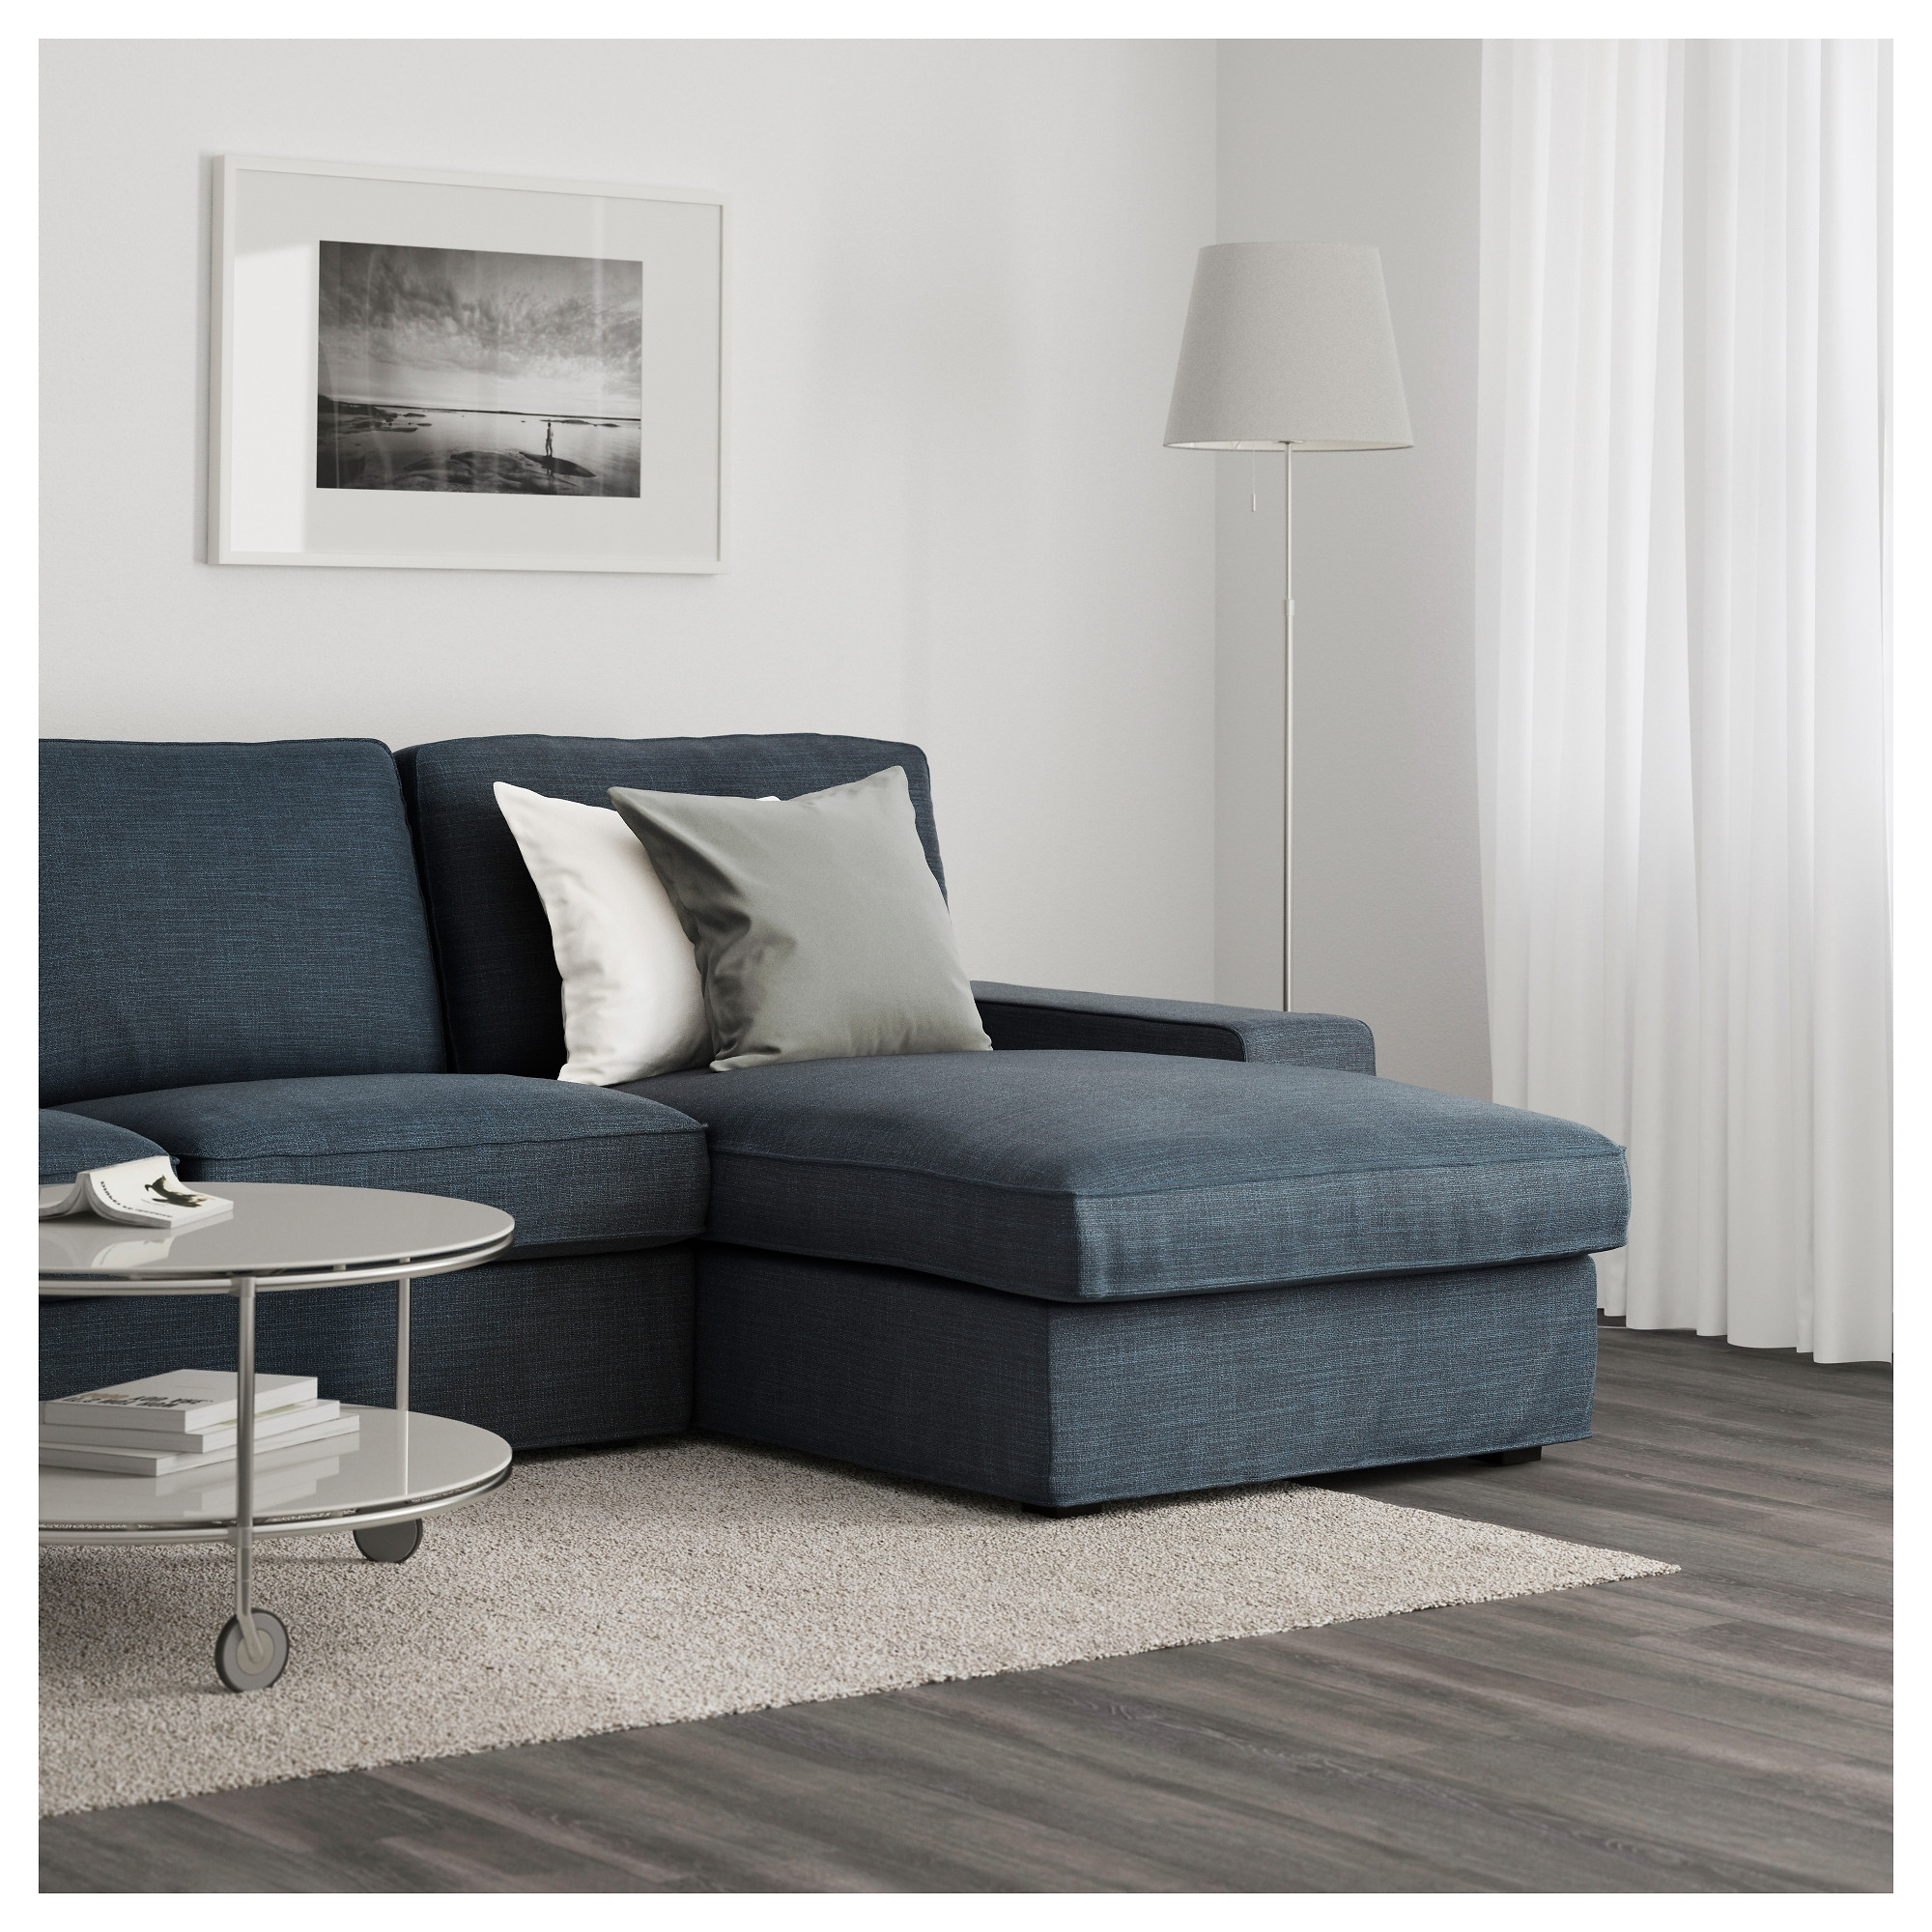 Kivik Sofa – With Chaise/hillared Beige – Ikea Within Well Known Ikea Ektorp Chaises (View 10 of 15)